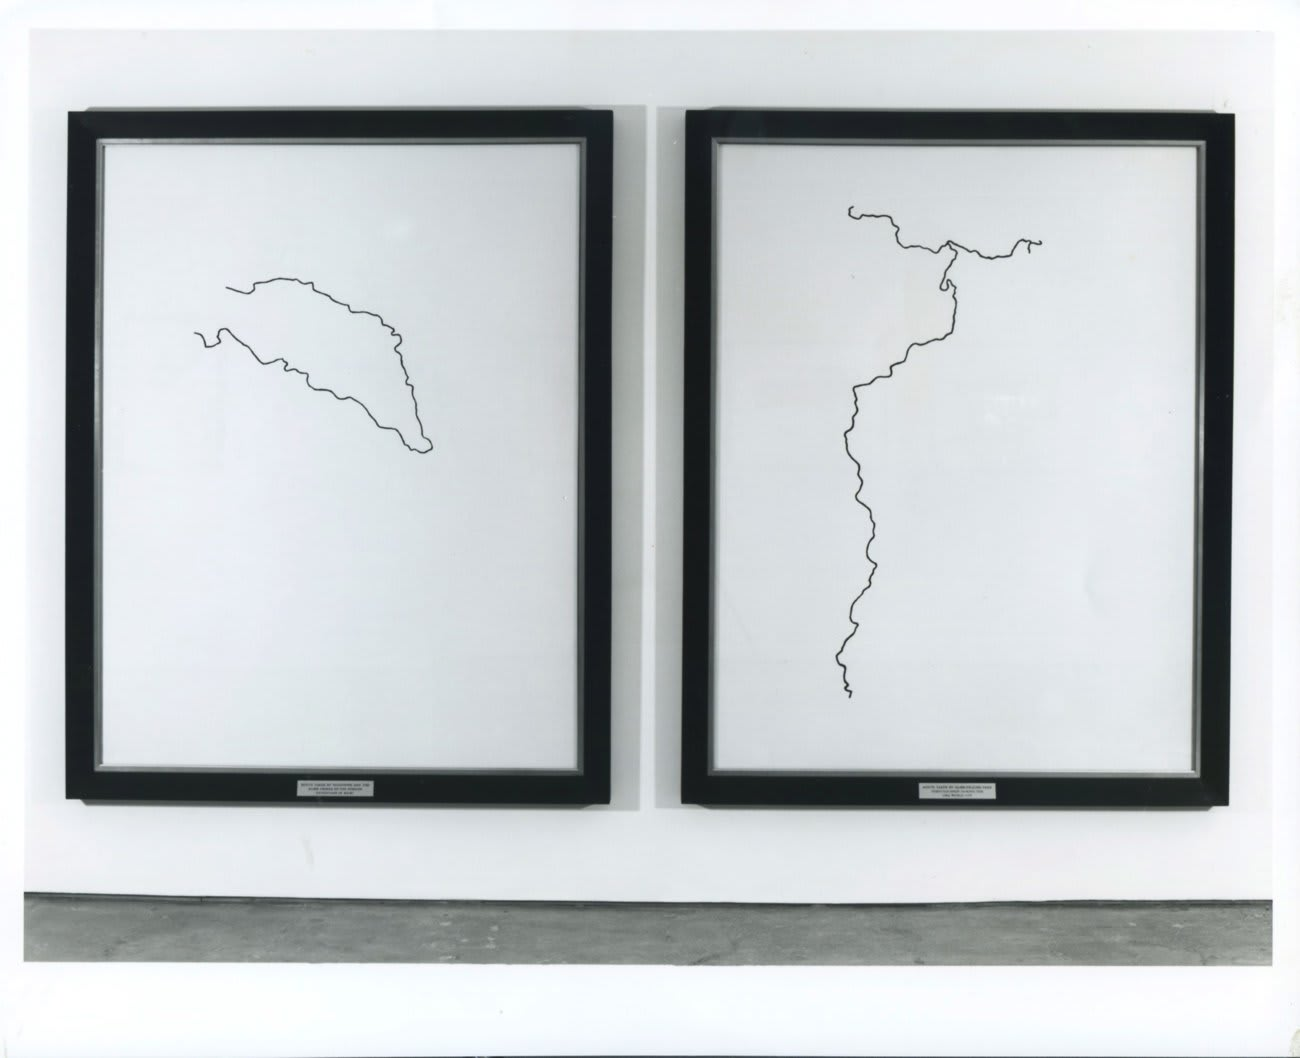 Keith Coventry: New Works, installation view, October 1993